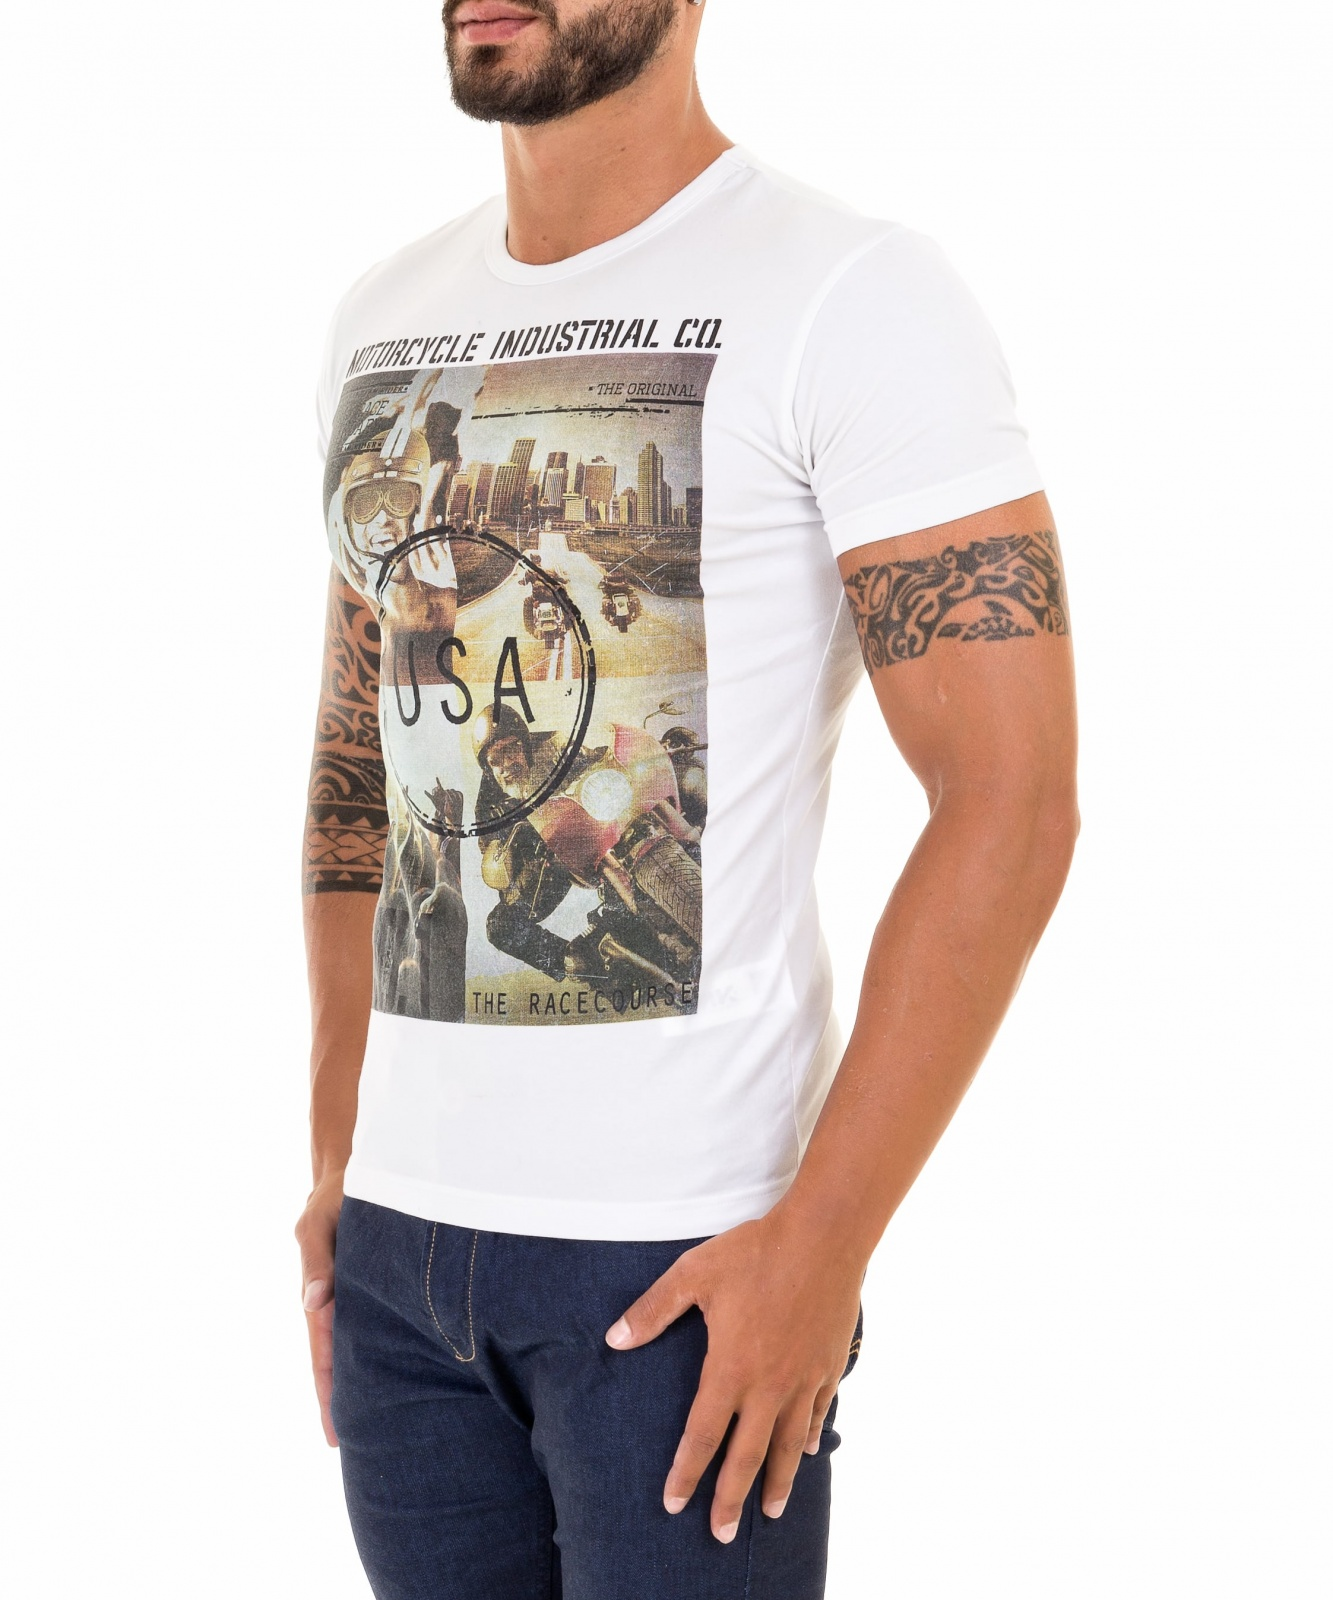 T-SHIRT MOTORCYCLE INDUST